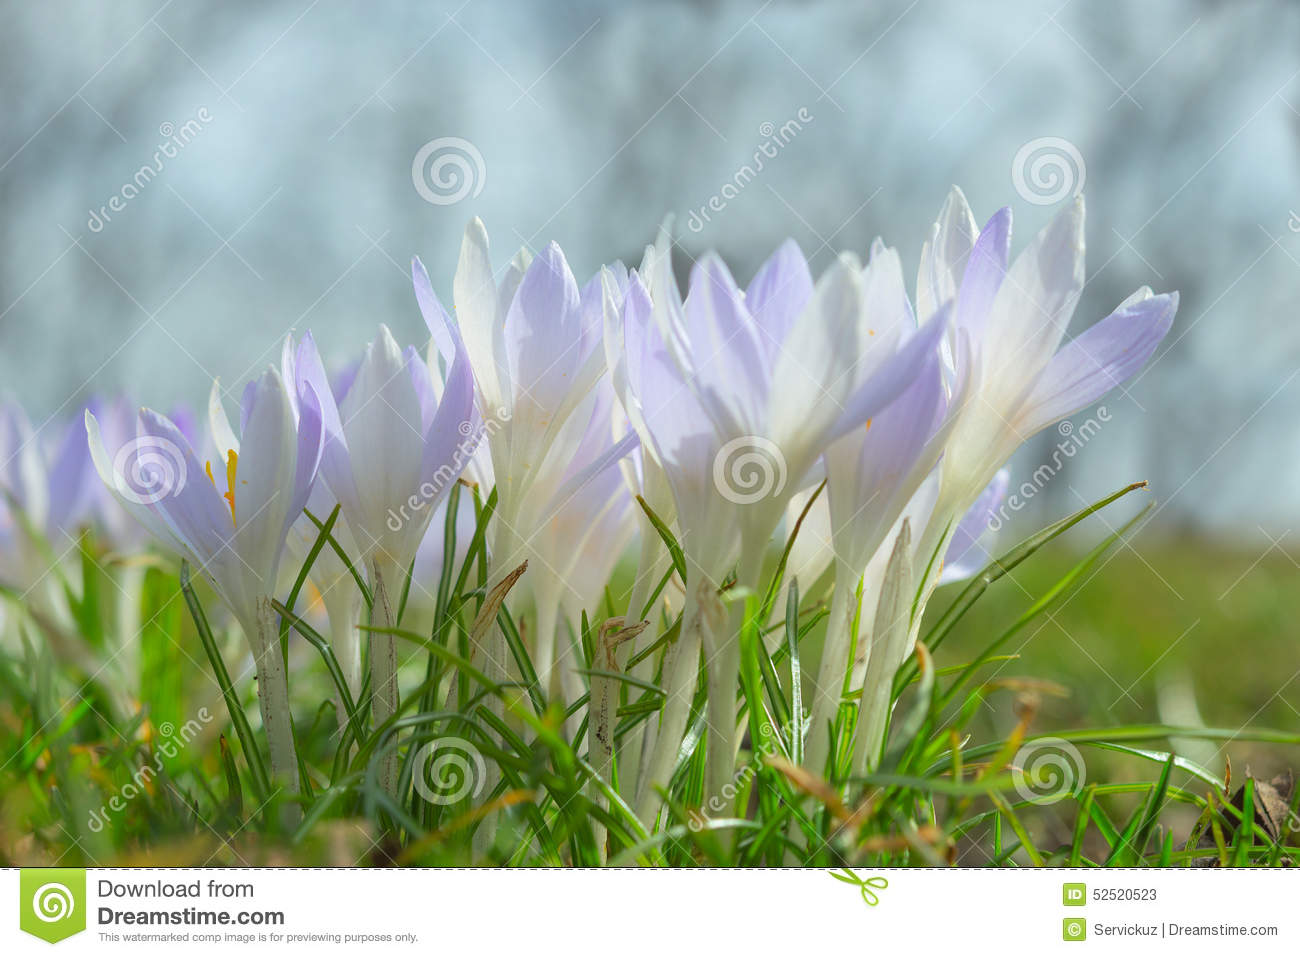 Spring Sunlight Crocus Pastel Flowers On Sunshine Alpine Meadow.